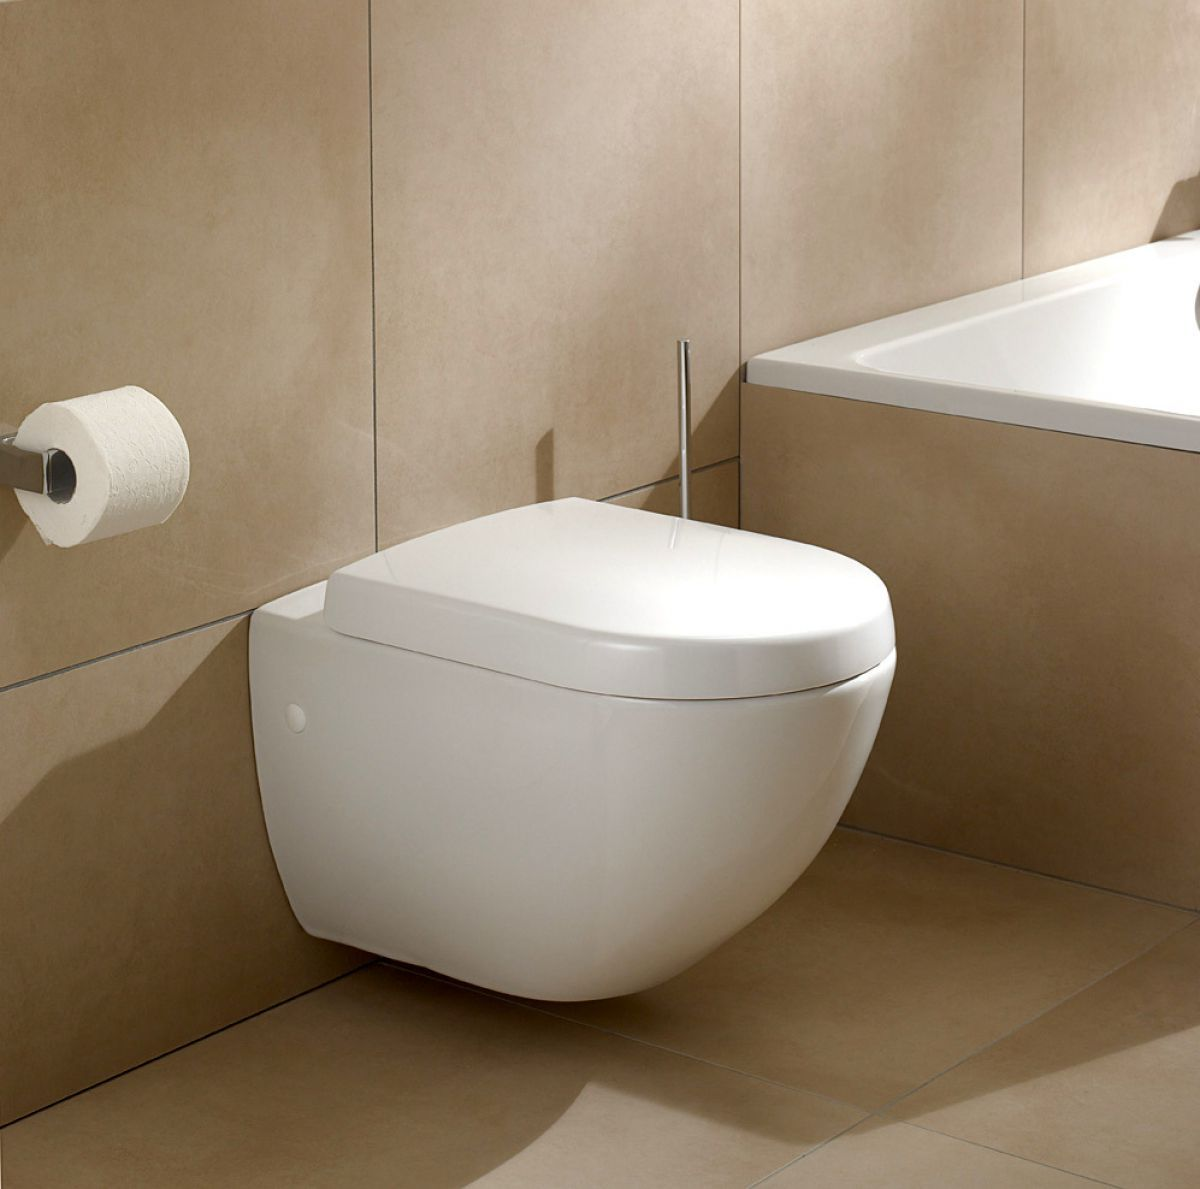 Villeroy And Boch Soho Compact Wall Hung Wc Wall Hung Toilet Wall Mounted Toilet Toilet